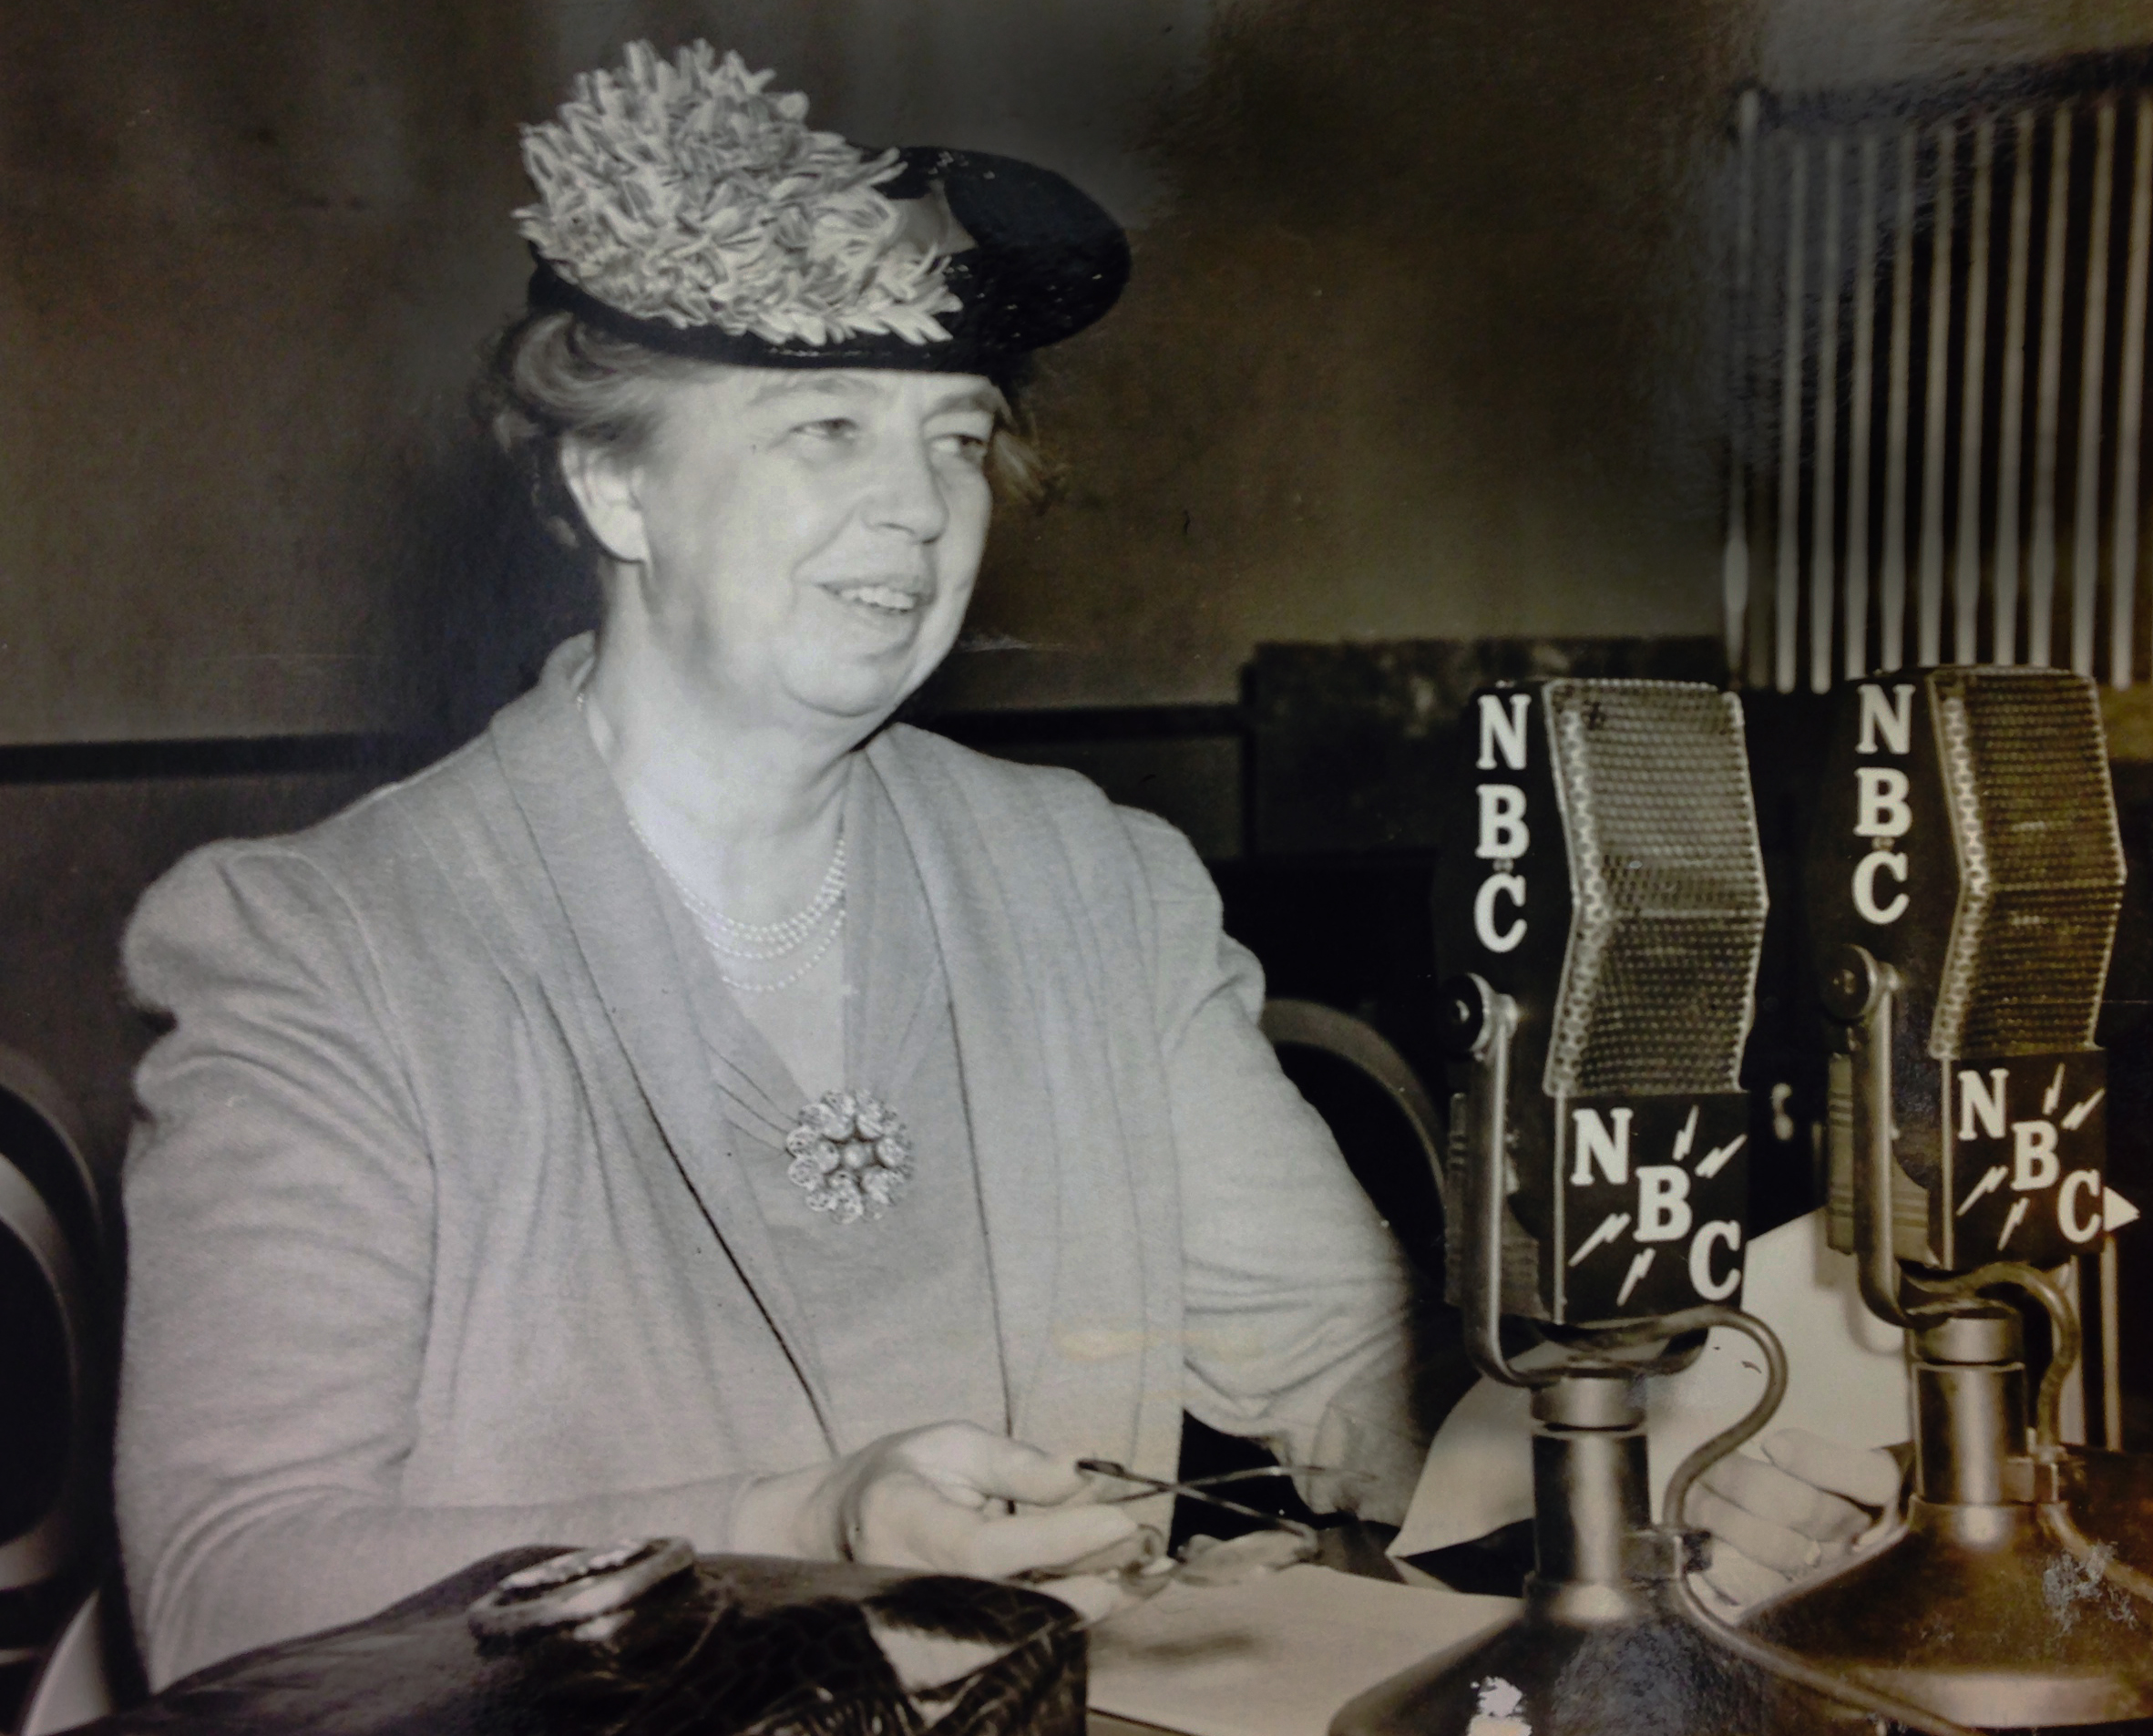 eleanor roosevelt the first lady of radio american radioworks mrs eleanor roosevelt s own program was an afternoon radio series broadcast twice a